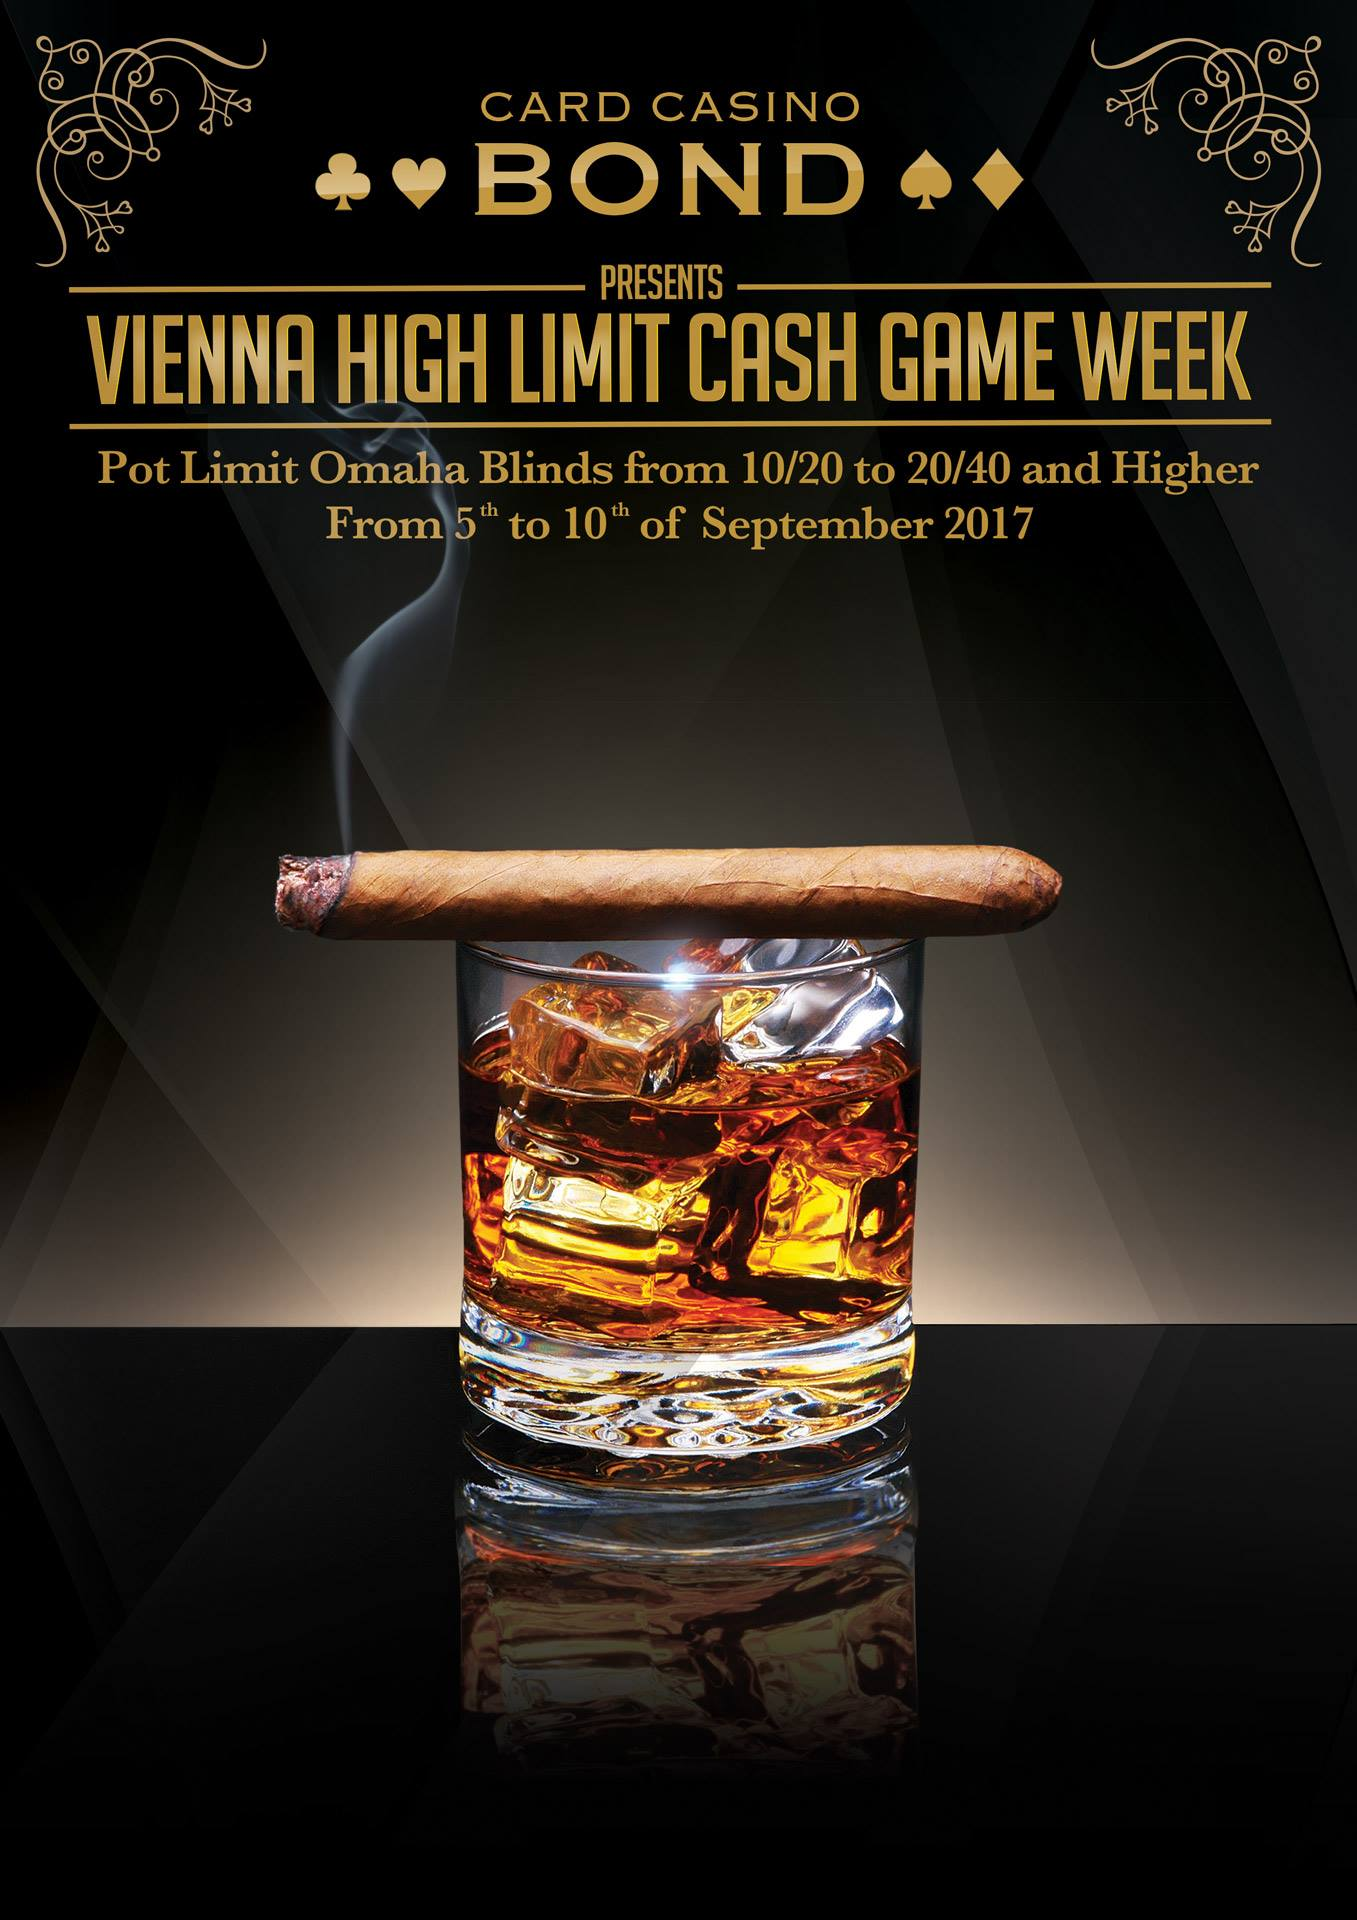 Vienna High Limit Cash Game Week